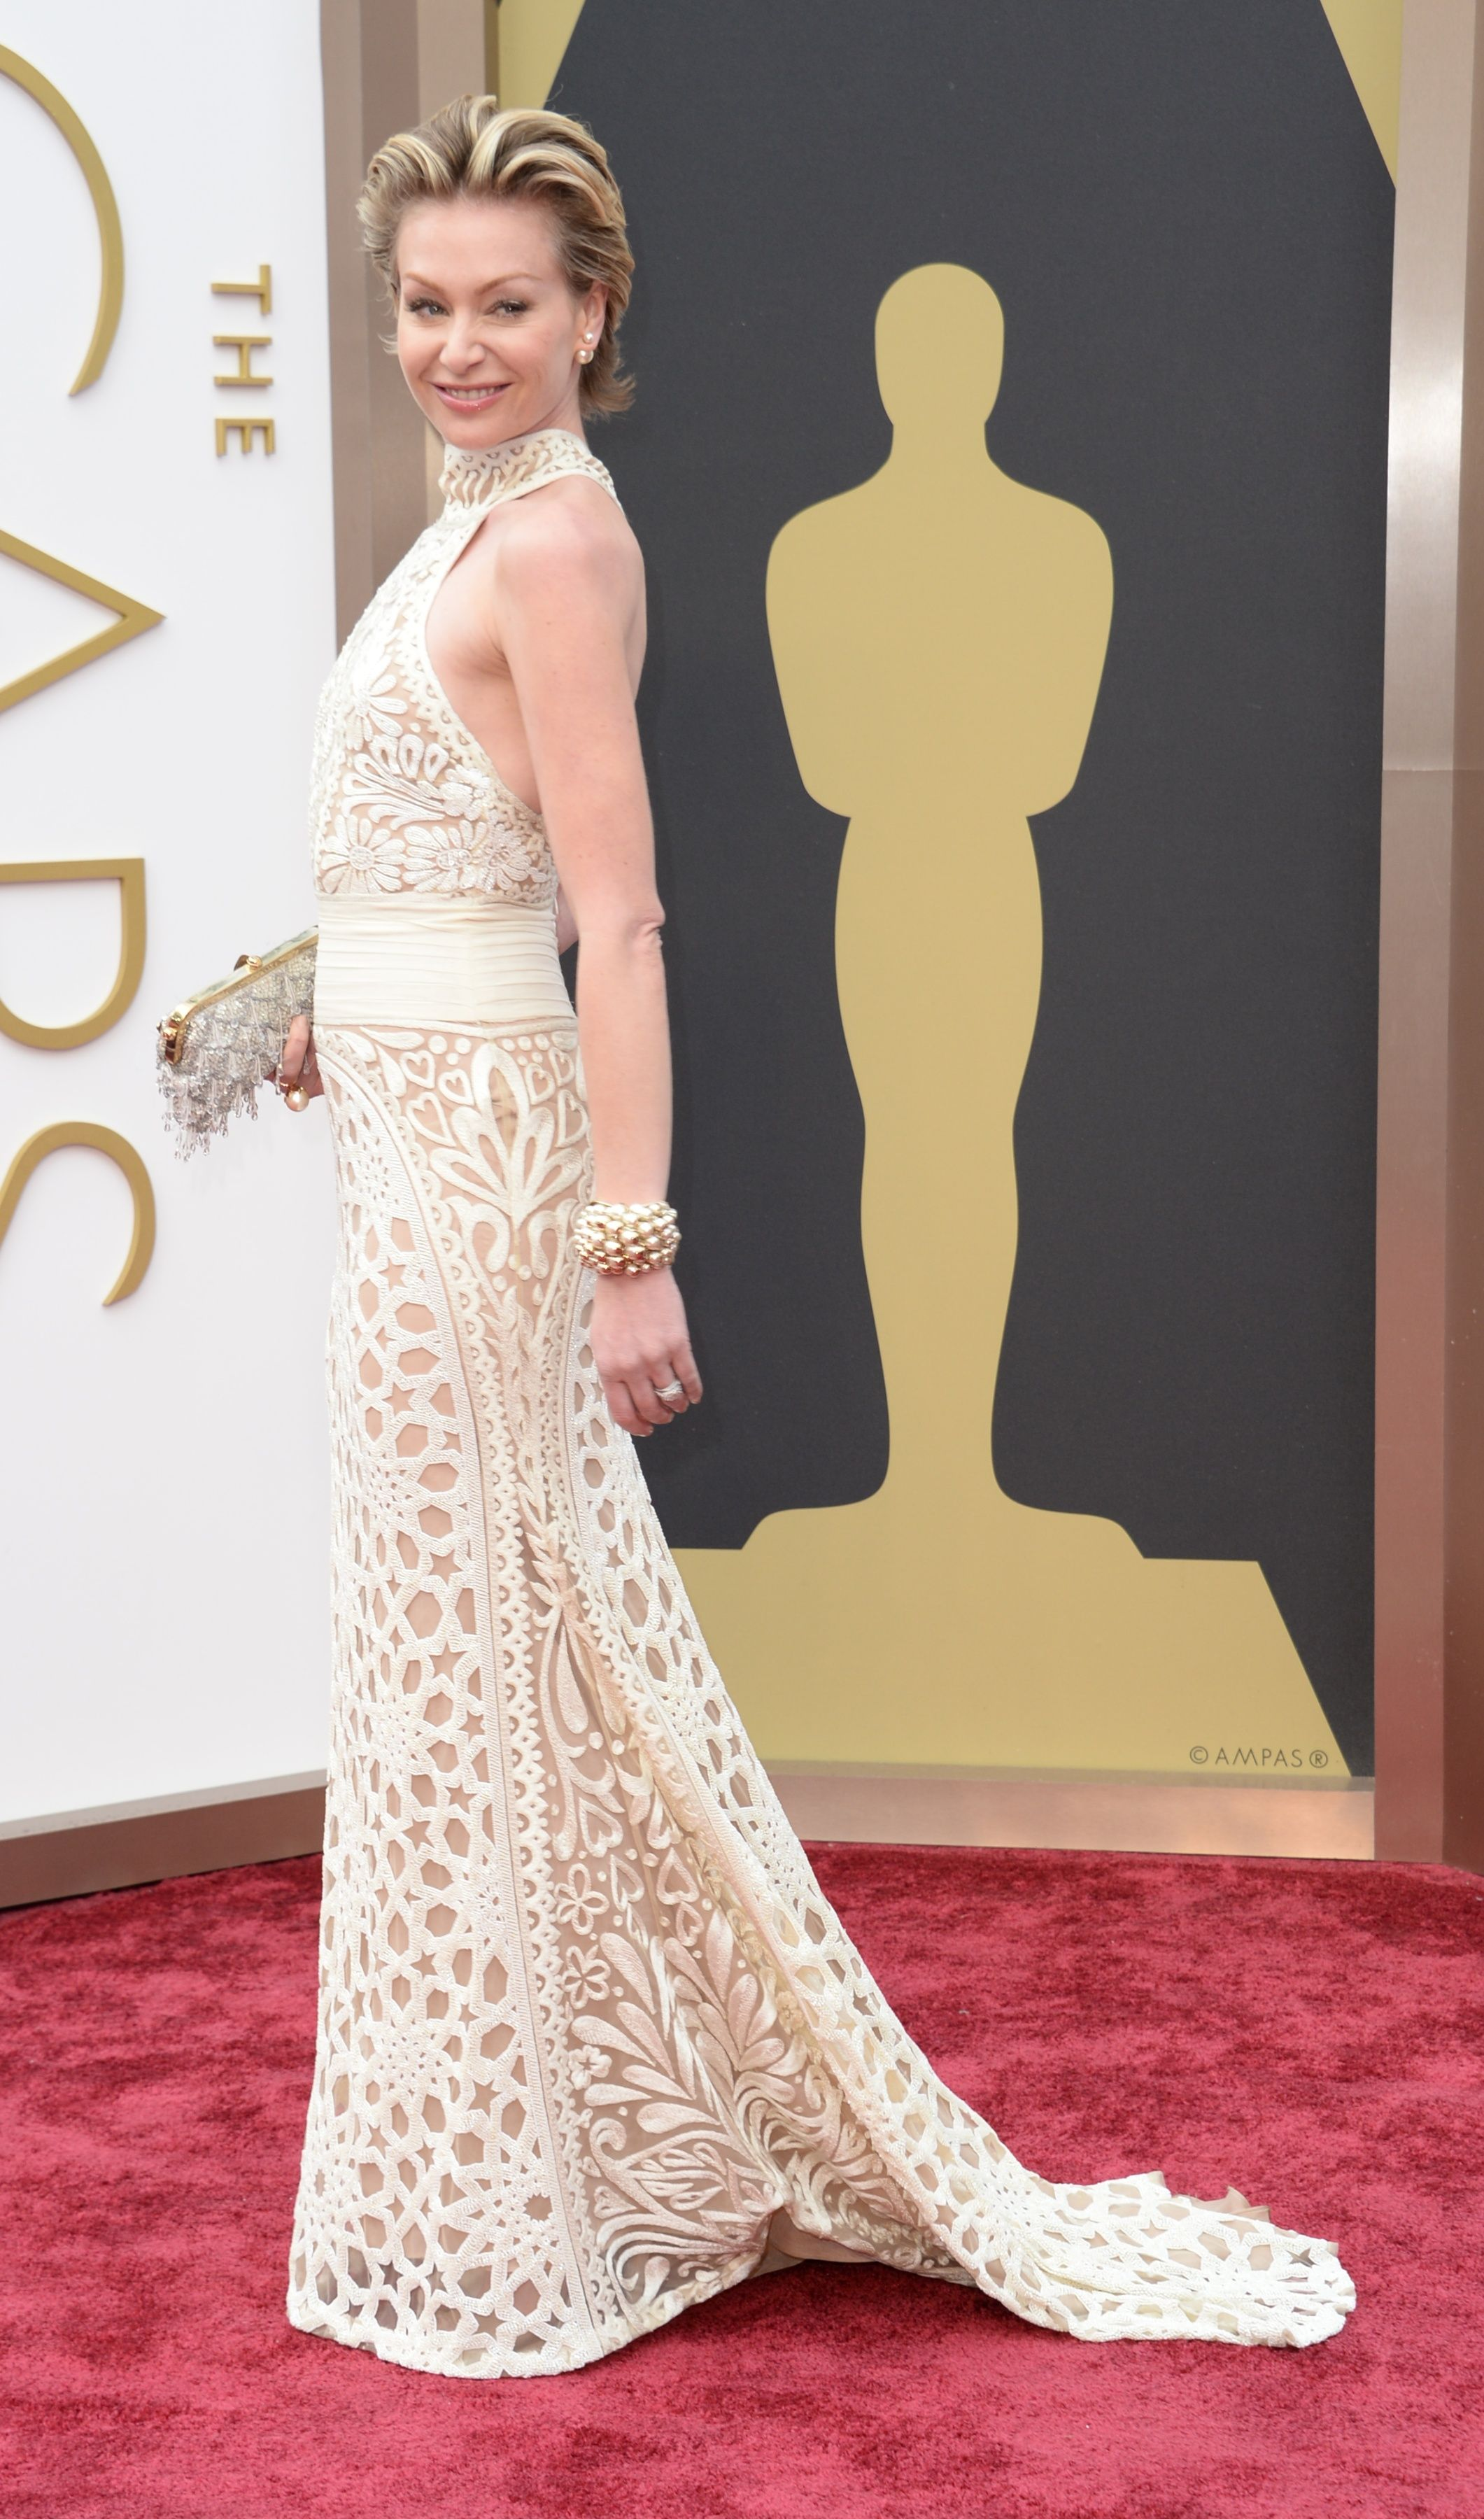 Portia de Rossi at the 2014 Oscars: Naeem Khan's halter gown was a dramatic choice for Portia de Rossi.